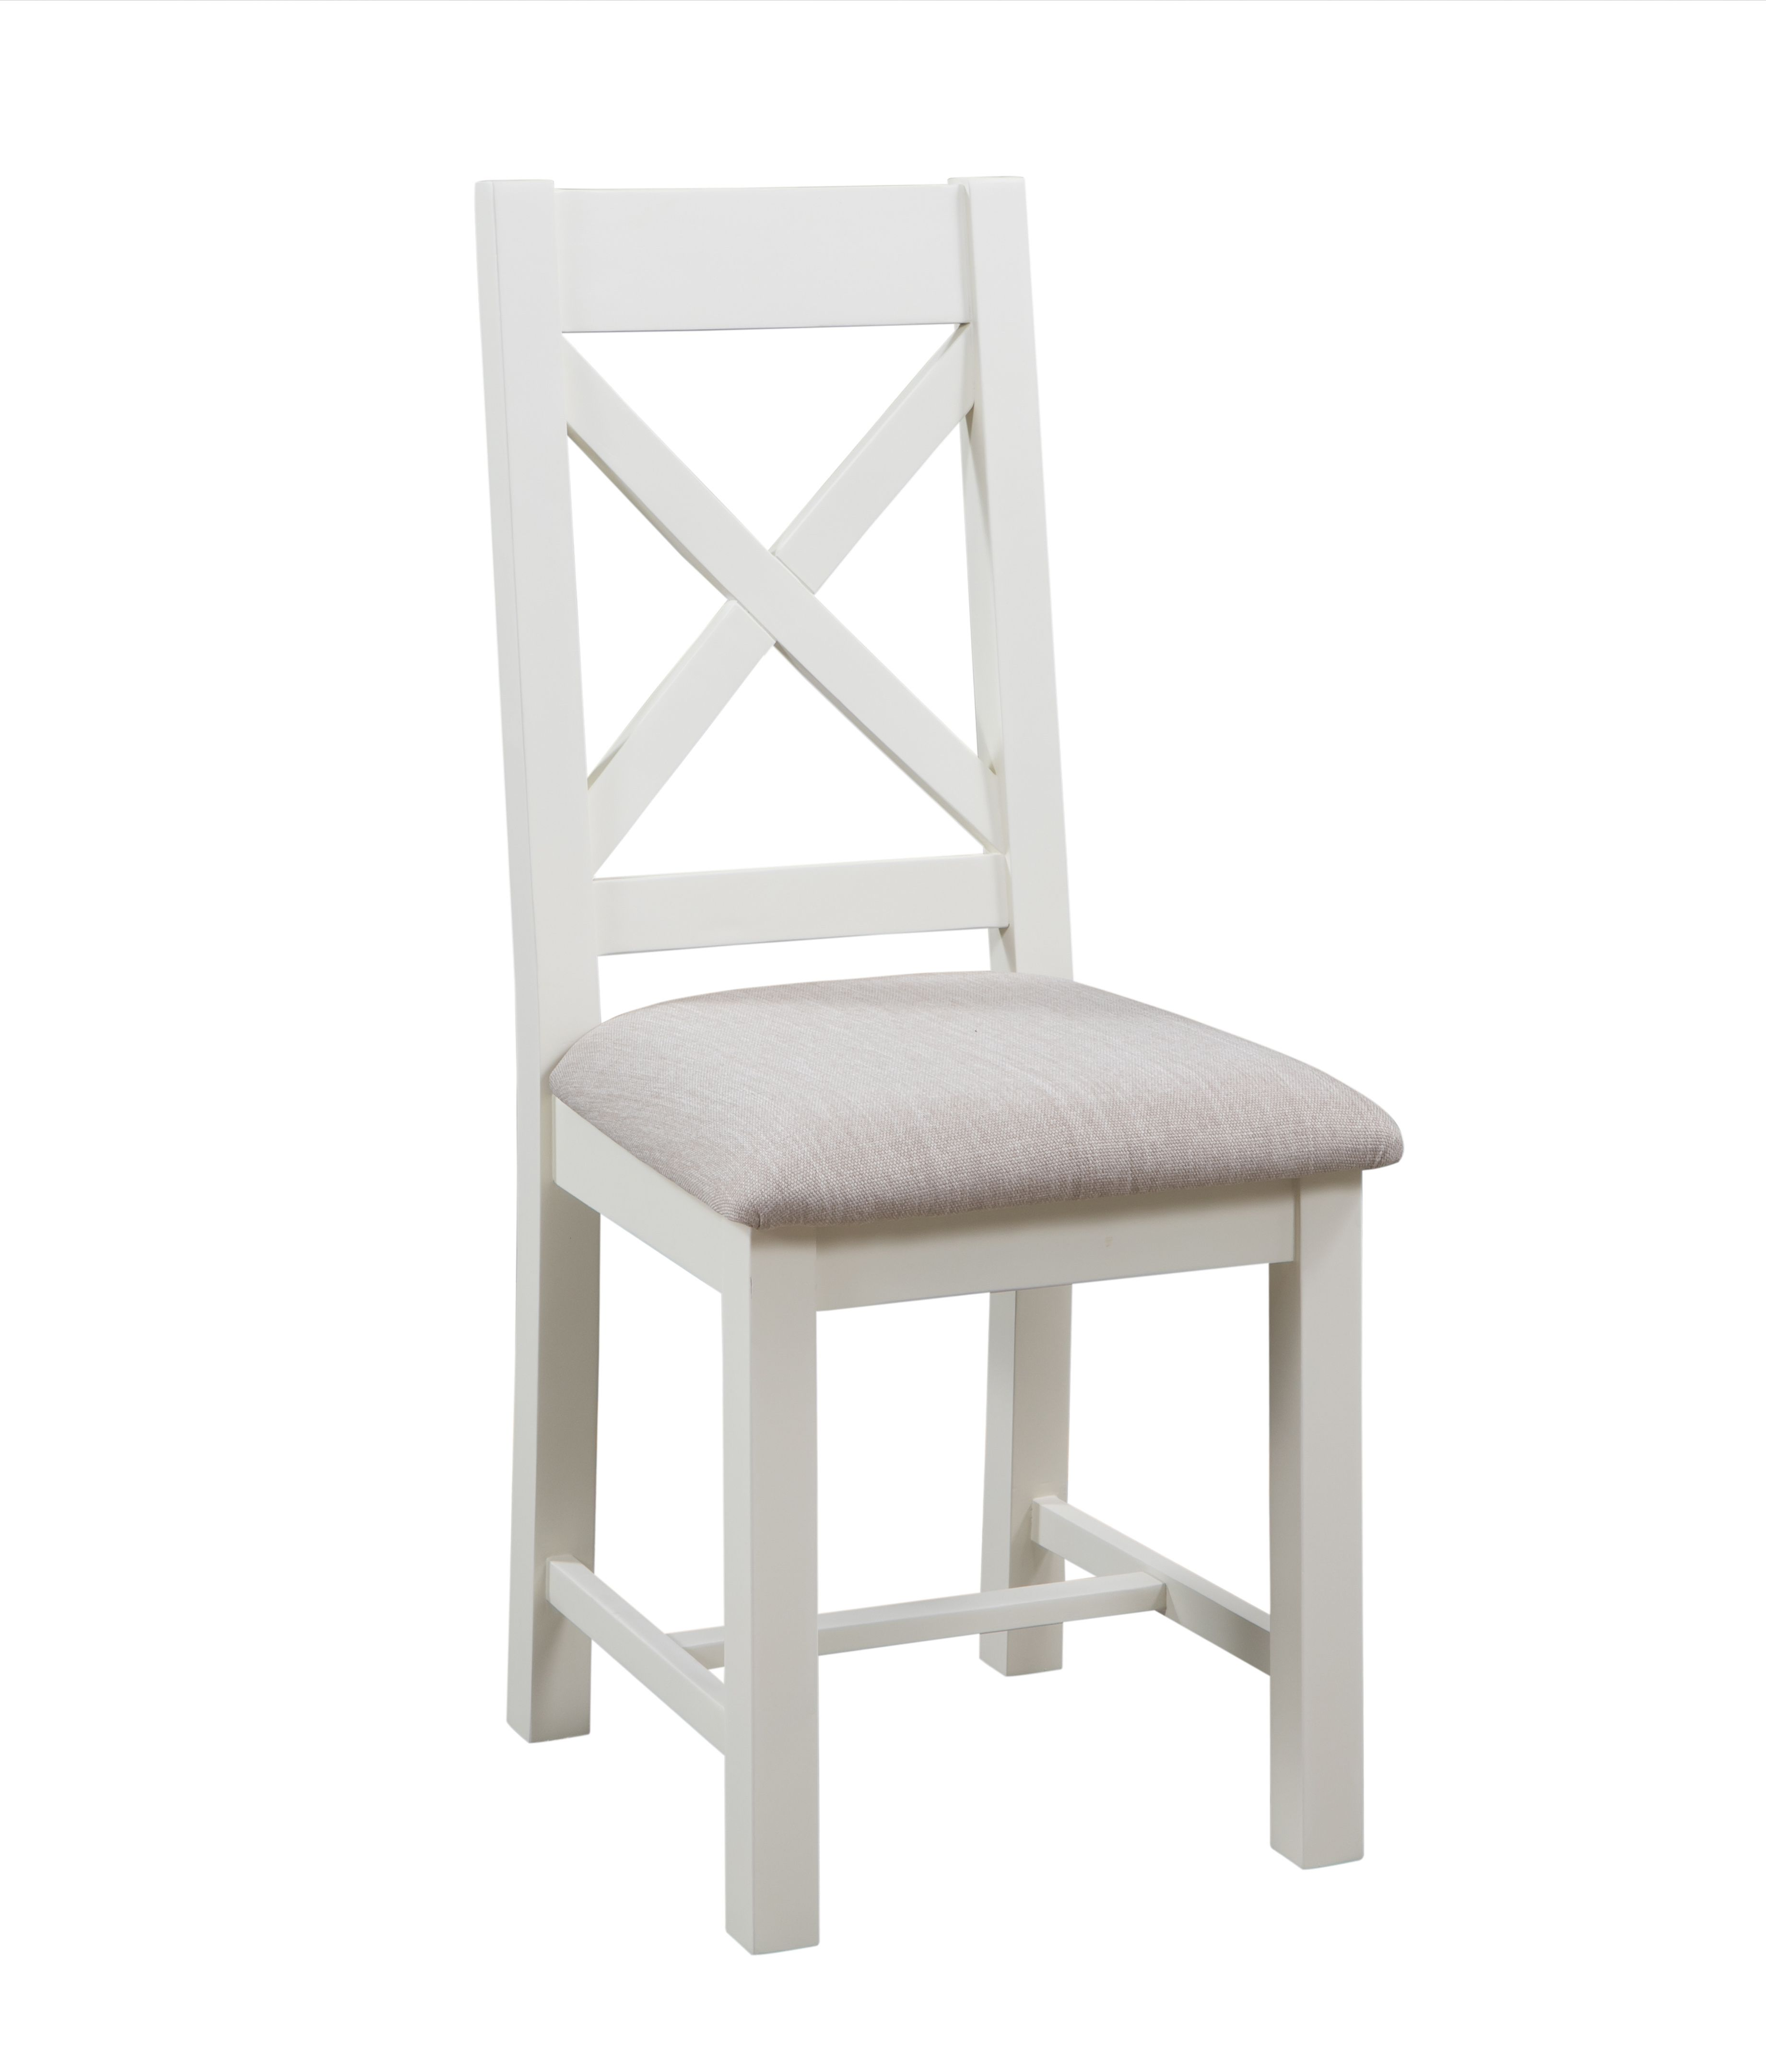 DORCHESTER PAINTED Cross Back Dining Chair